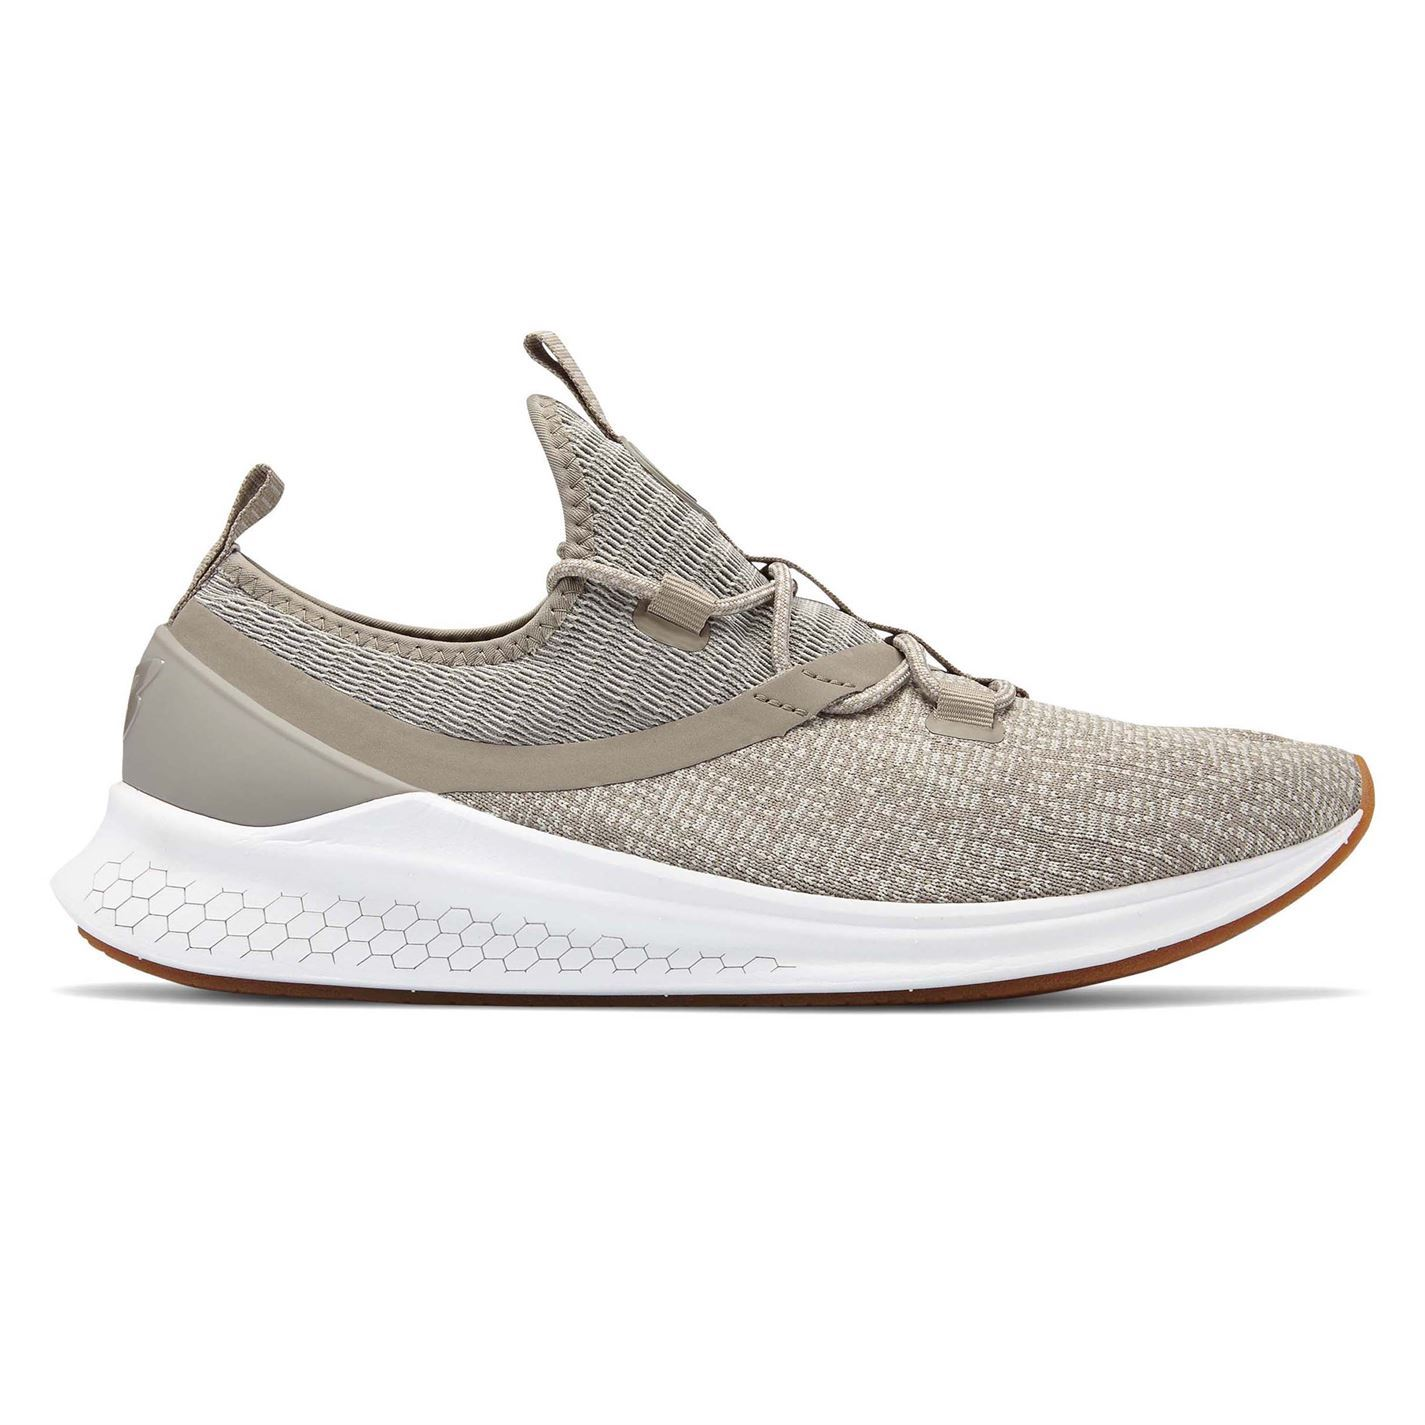 New Balance Gents Lazer Foam Sneakers Mens Gents Balance Runners Laces Fastened Ventilated 0ebfa5